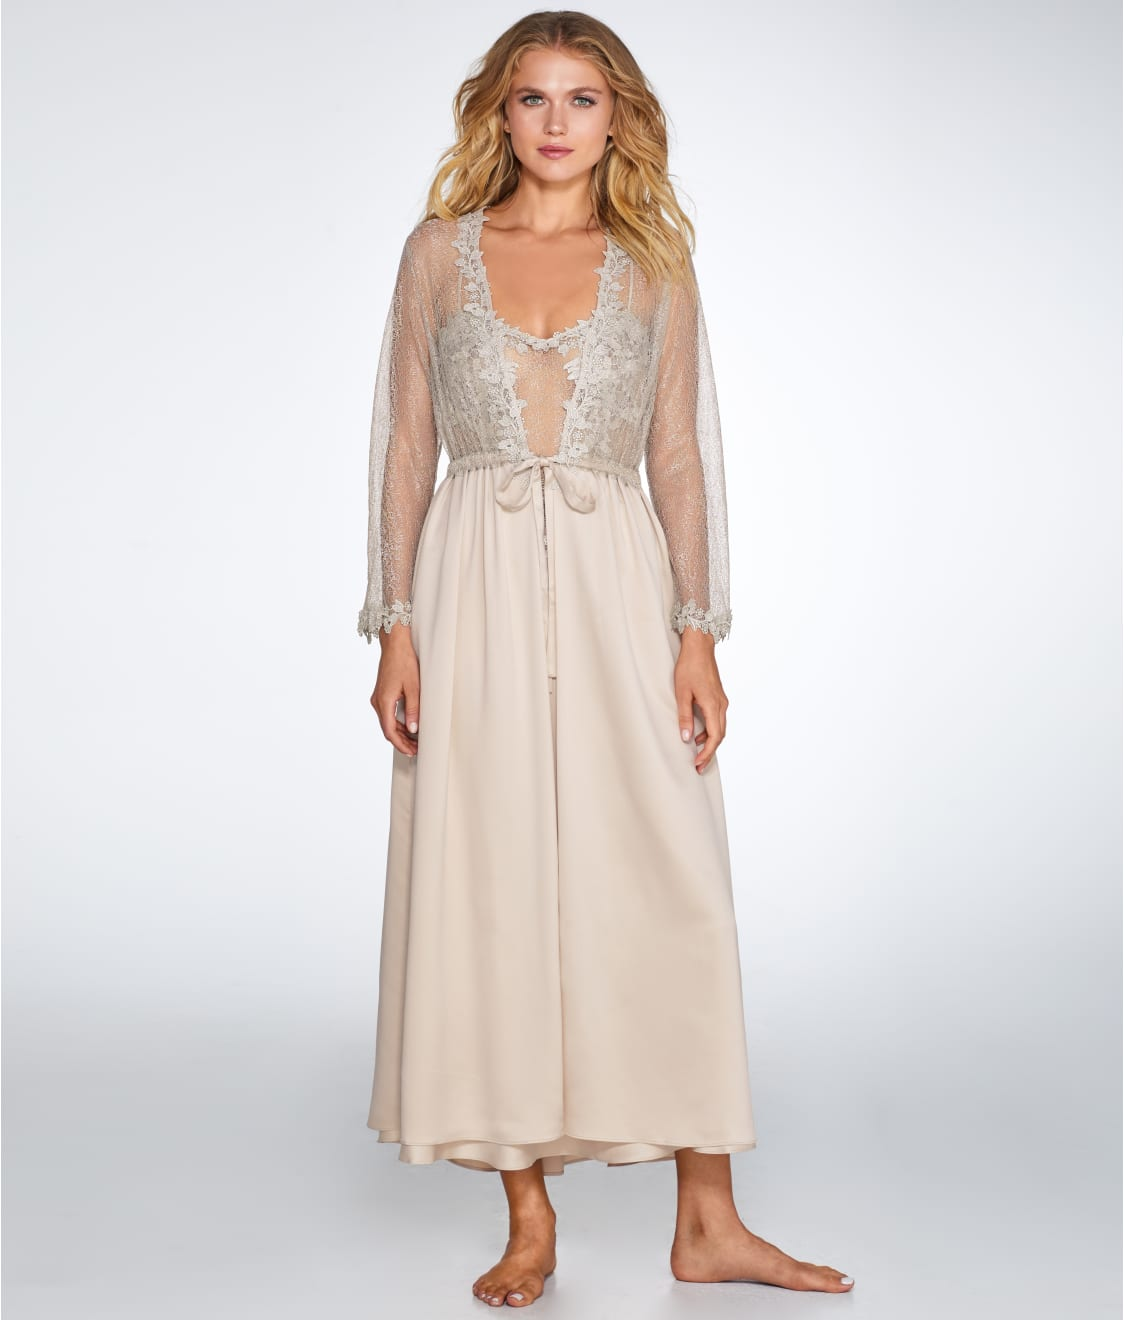 Flora Nikrooz Showstopper Charmeuse Gown Sleepwear 7533I at ...